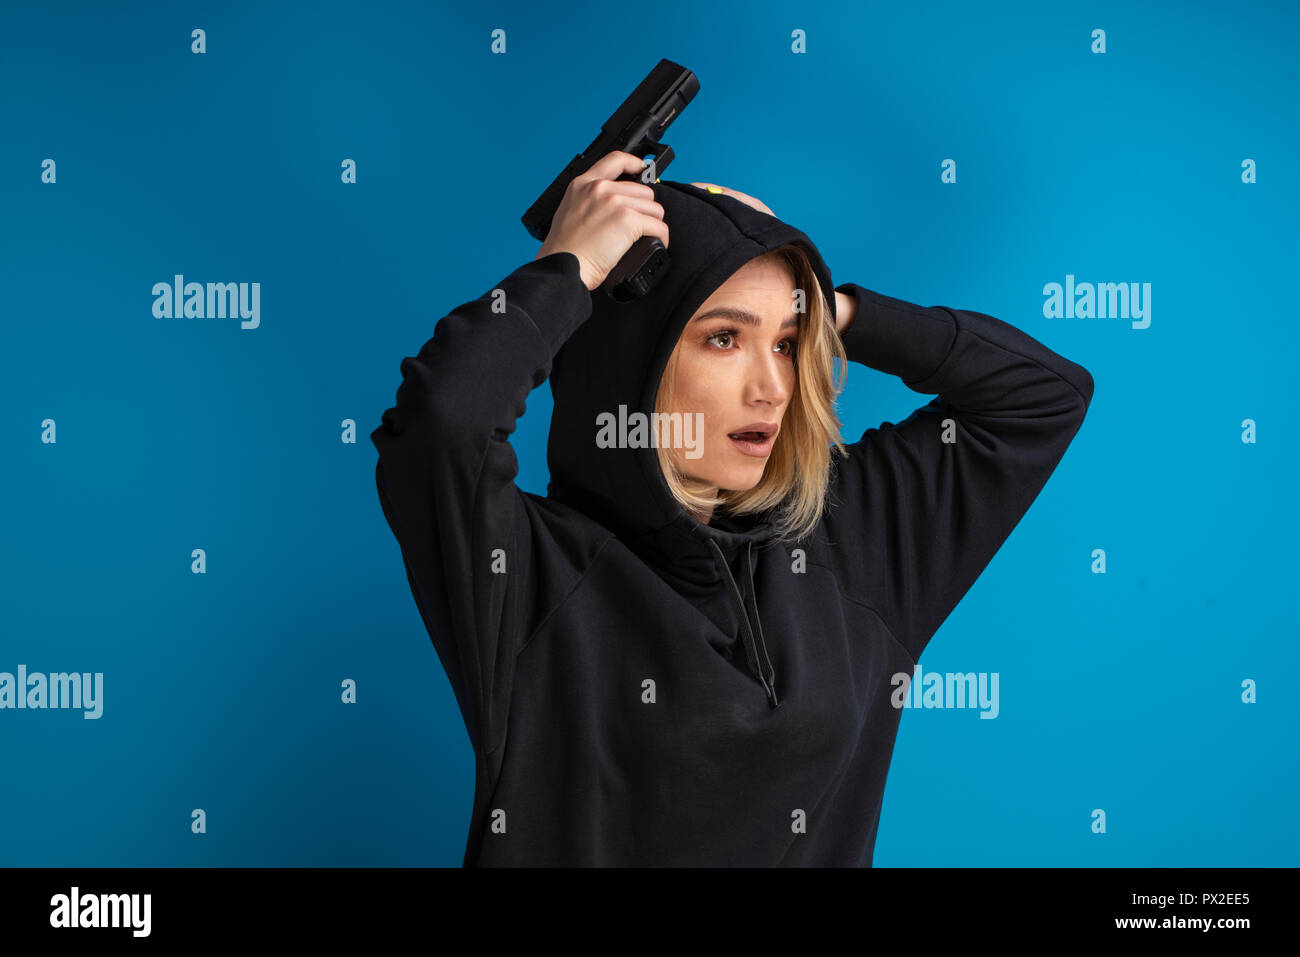 Portrait of hooded girl looking shocked while holding her hands with gun up on the head. Shot against blue background - Stock Image